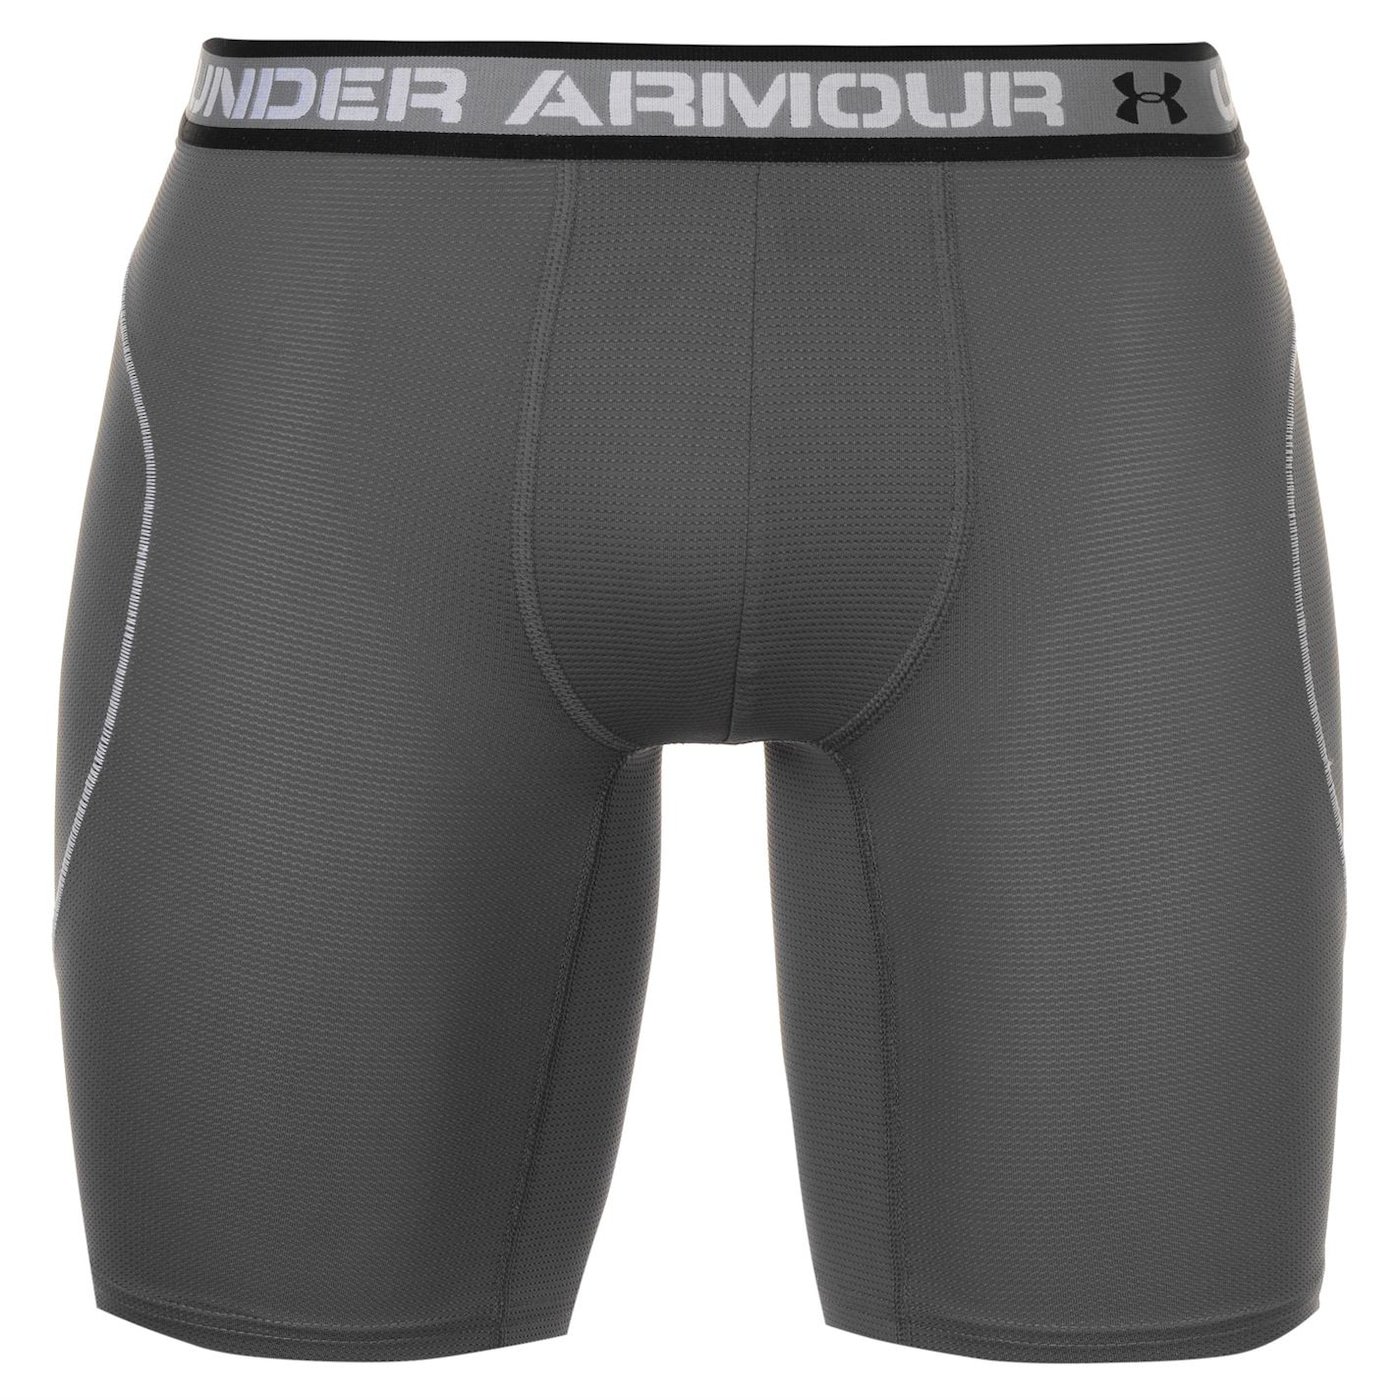 Under Armour Chill 9inch Boxerjocks Mens